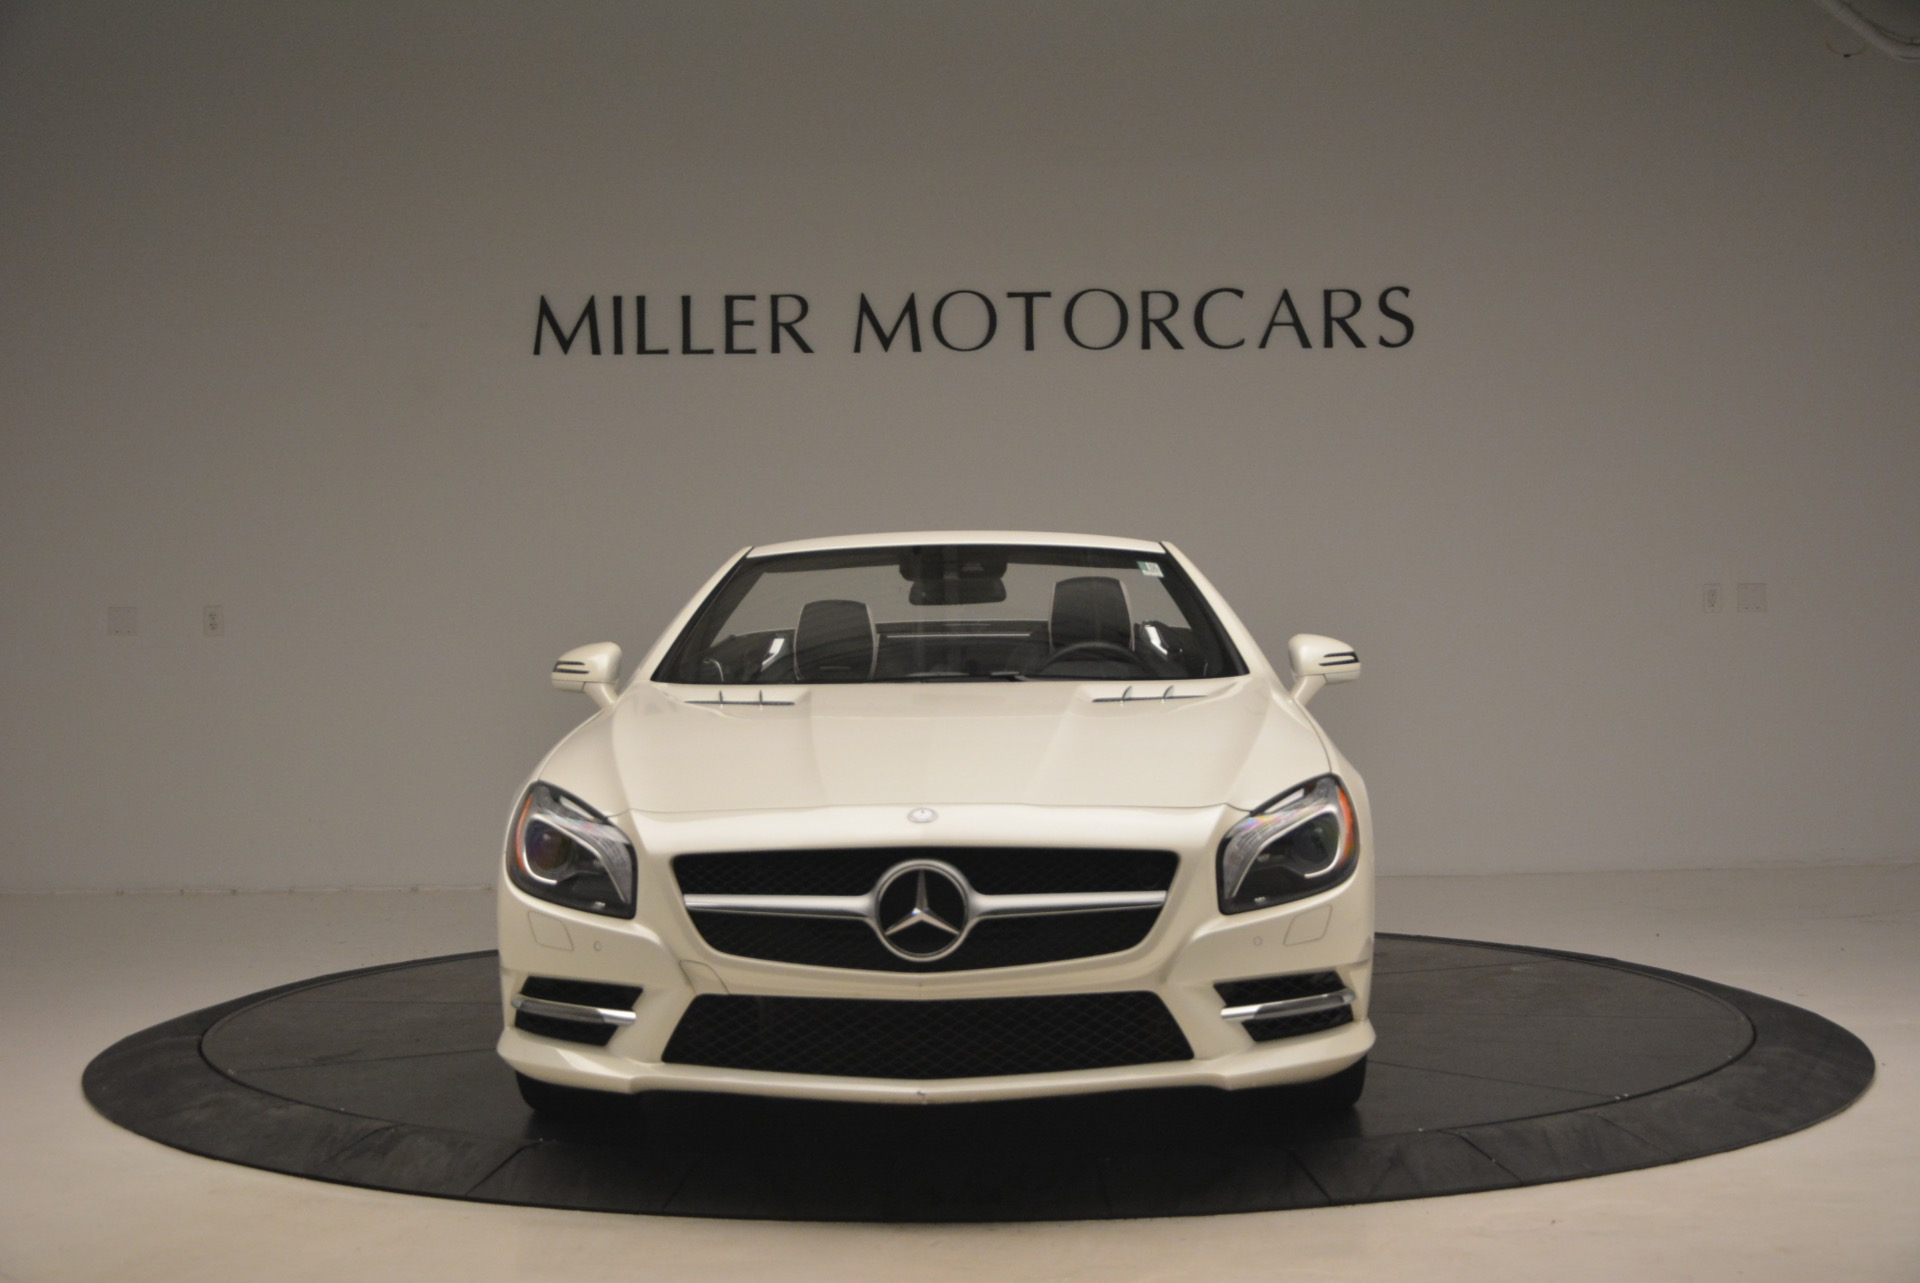 Used 2015 Mercedes Benz SL-Class SL 550 For Sale In Greenwich, CT 1261_p13